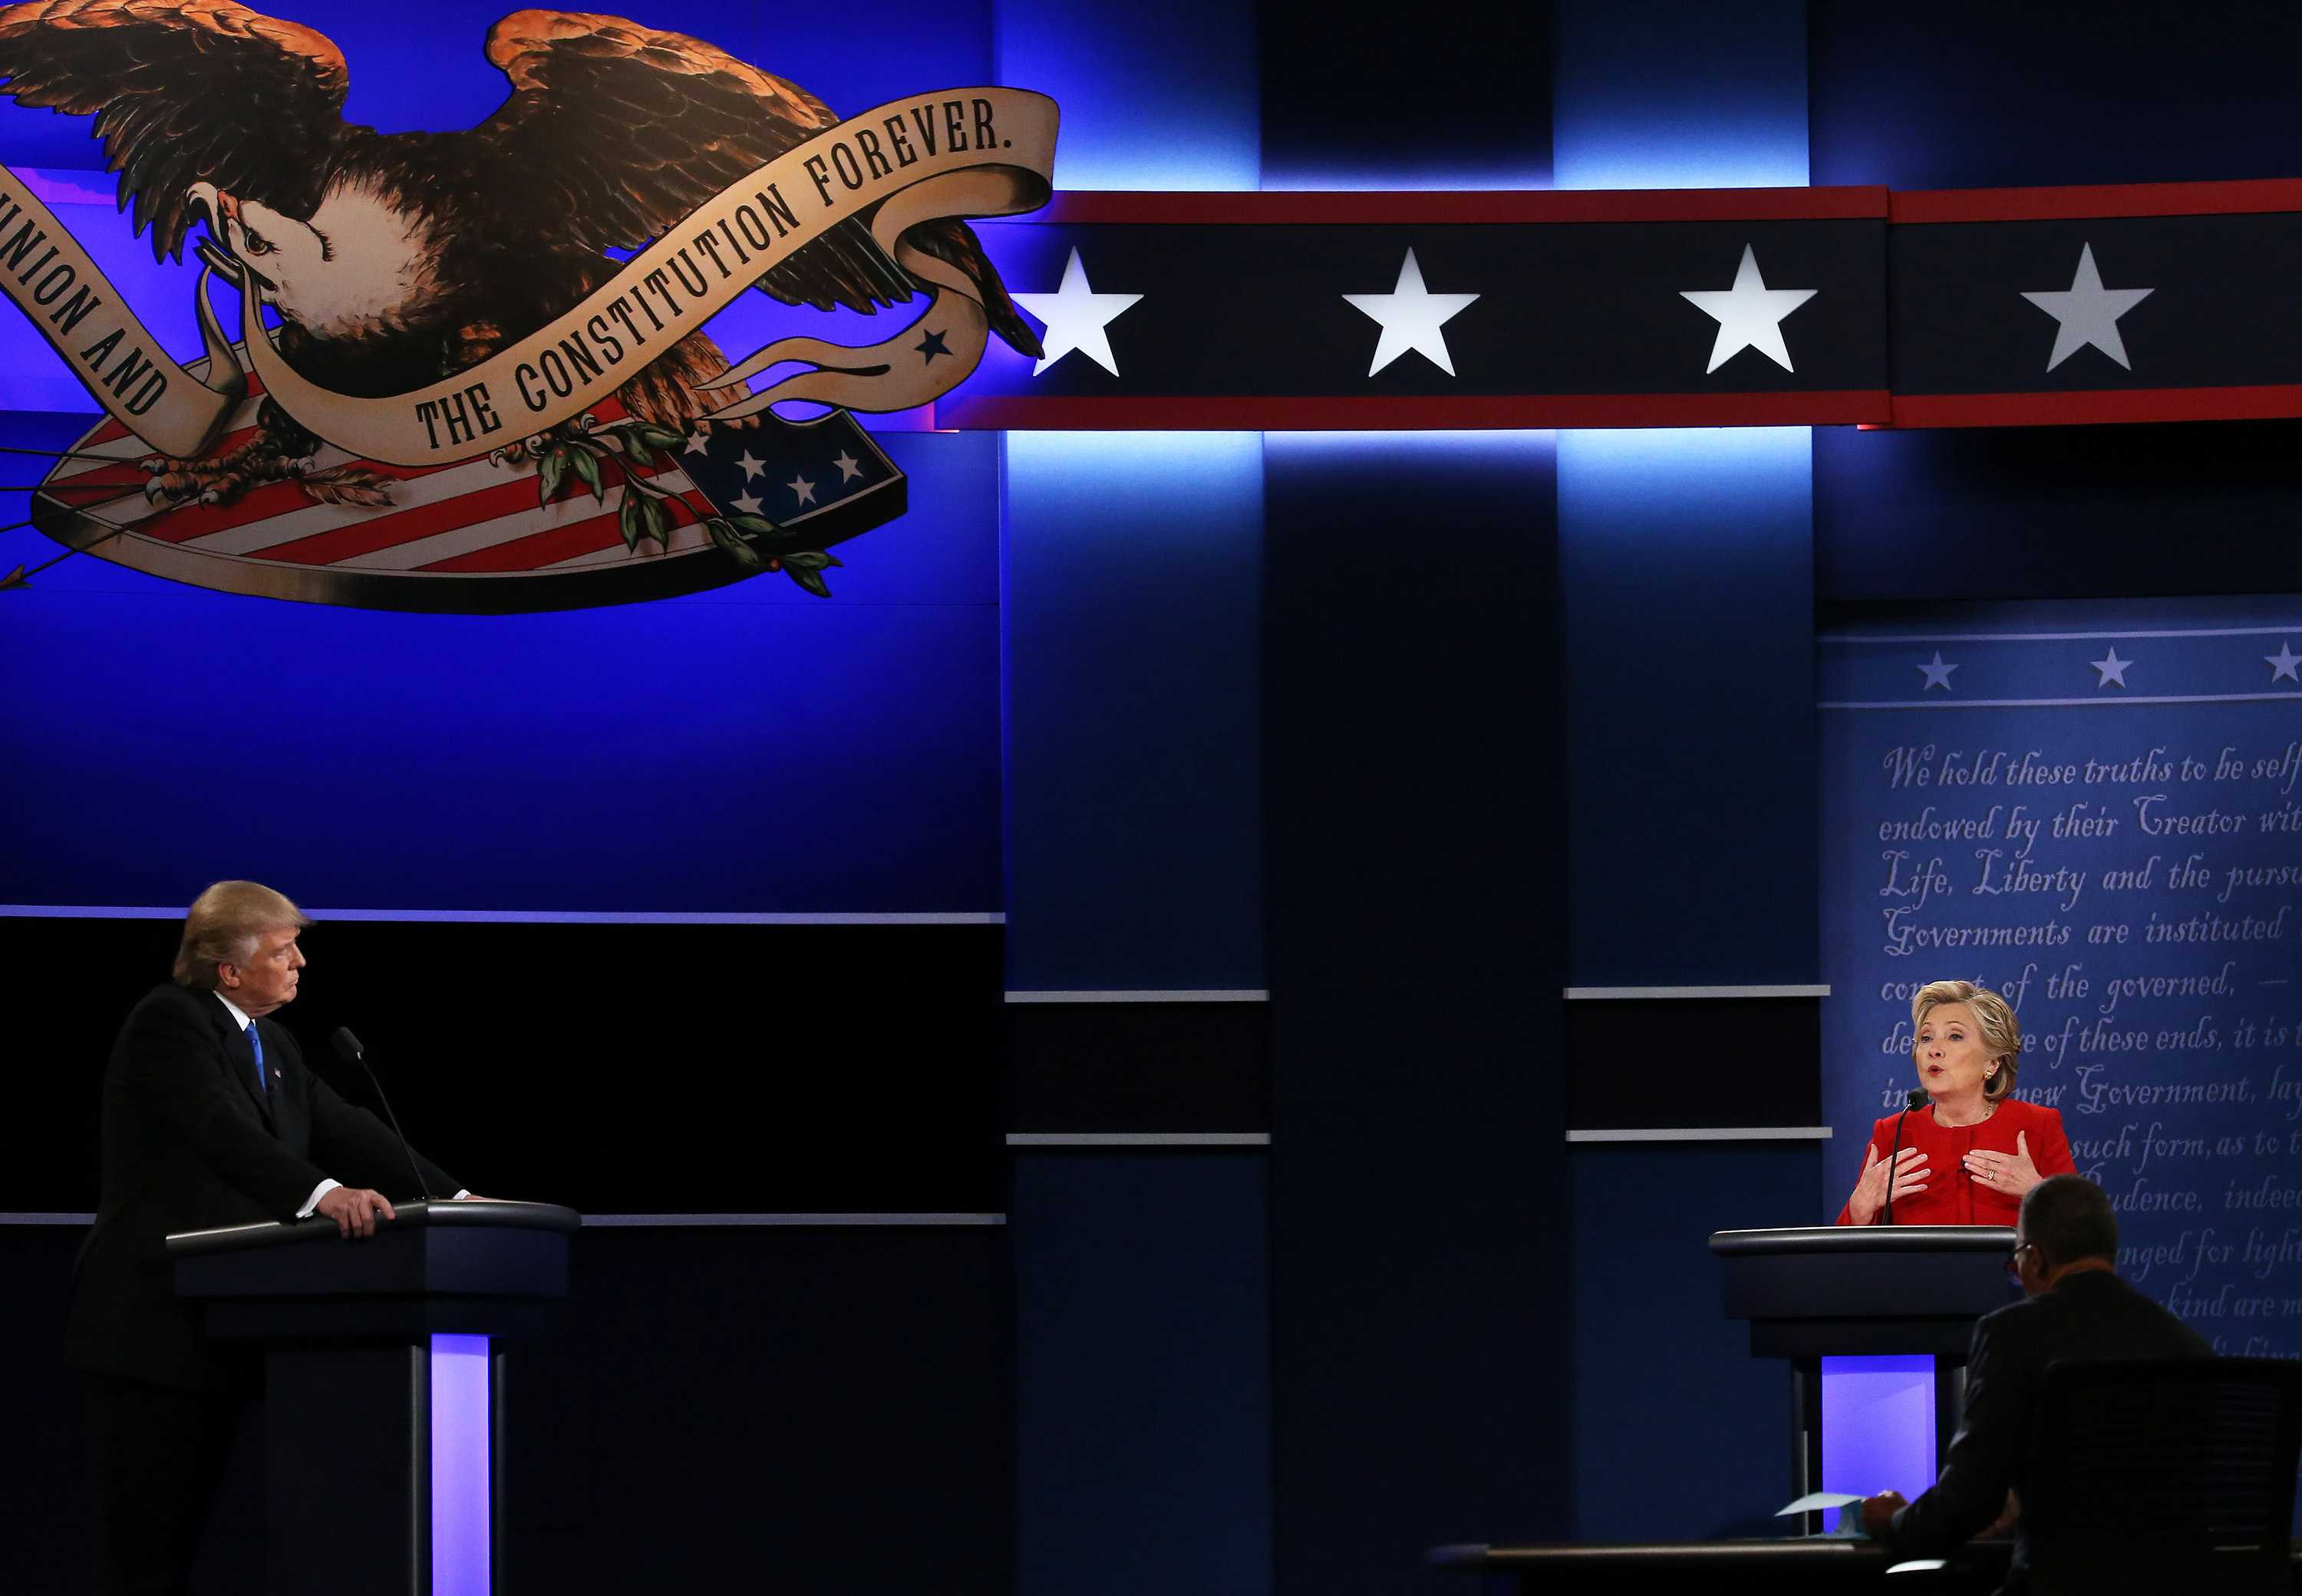 Clinton speaks at presidential debate